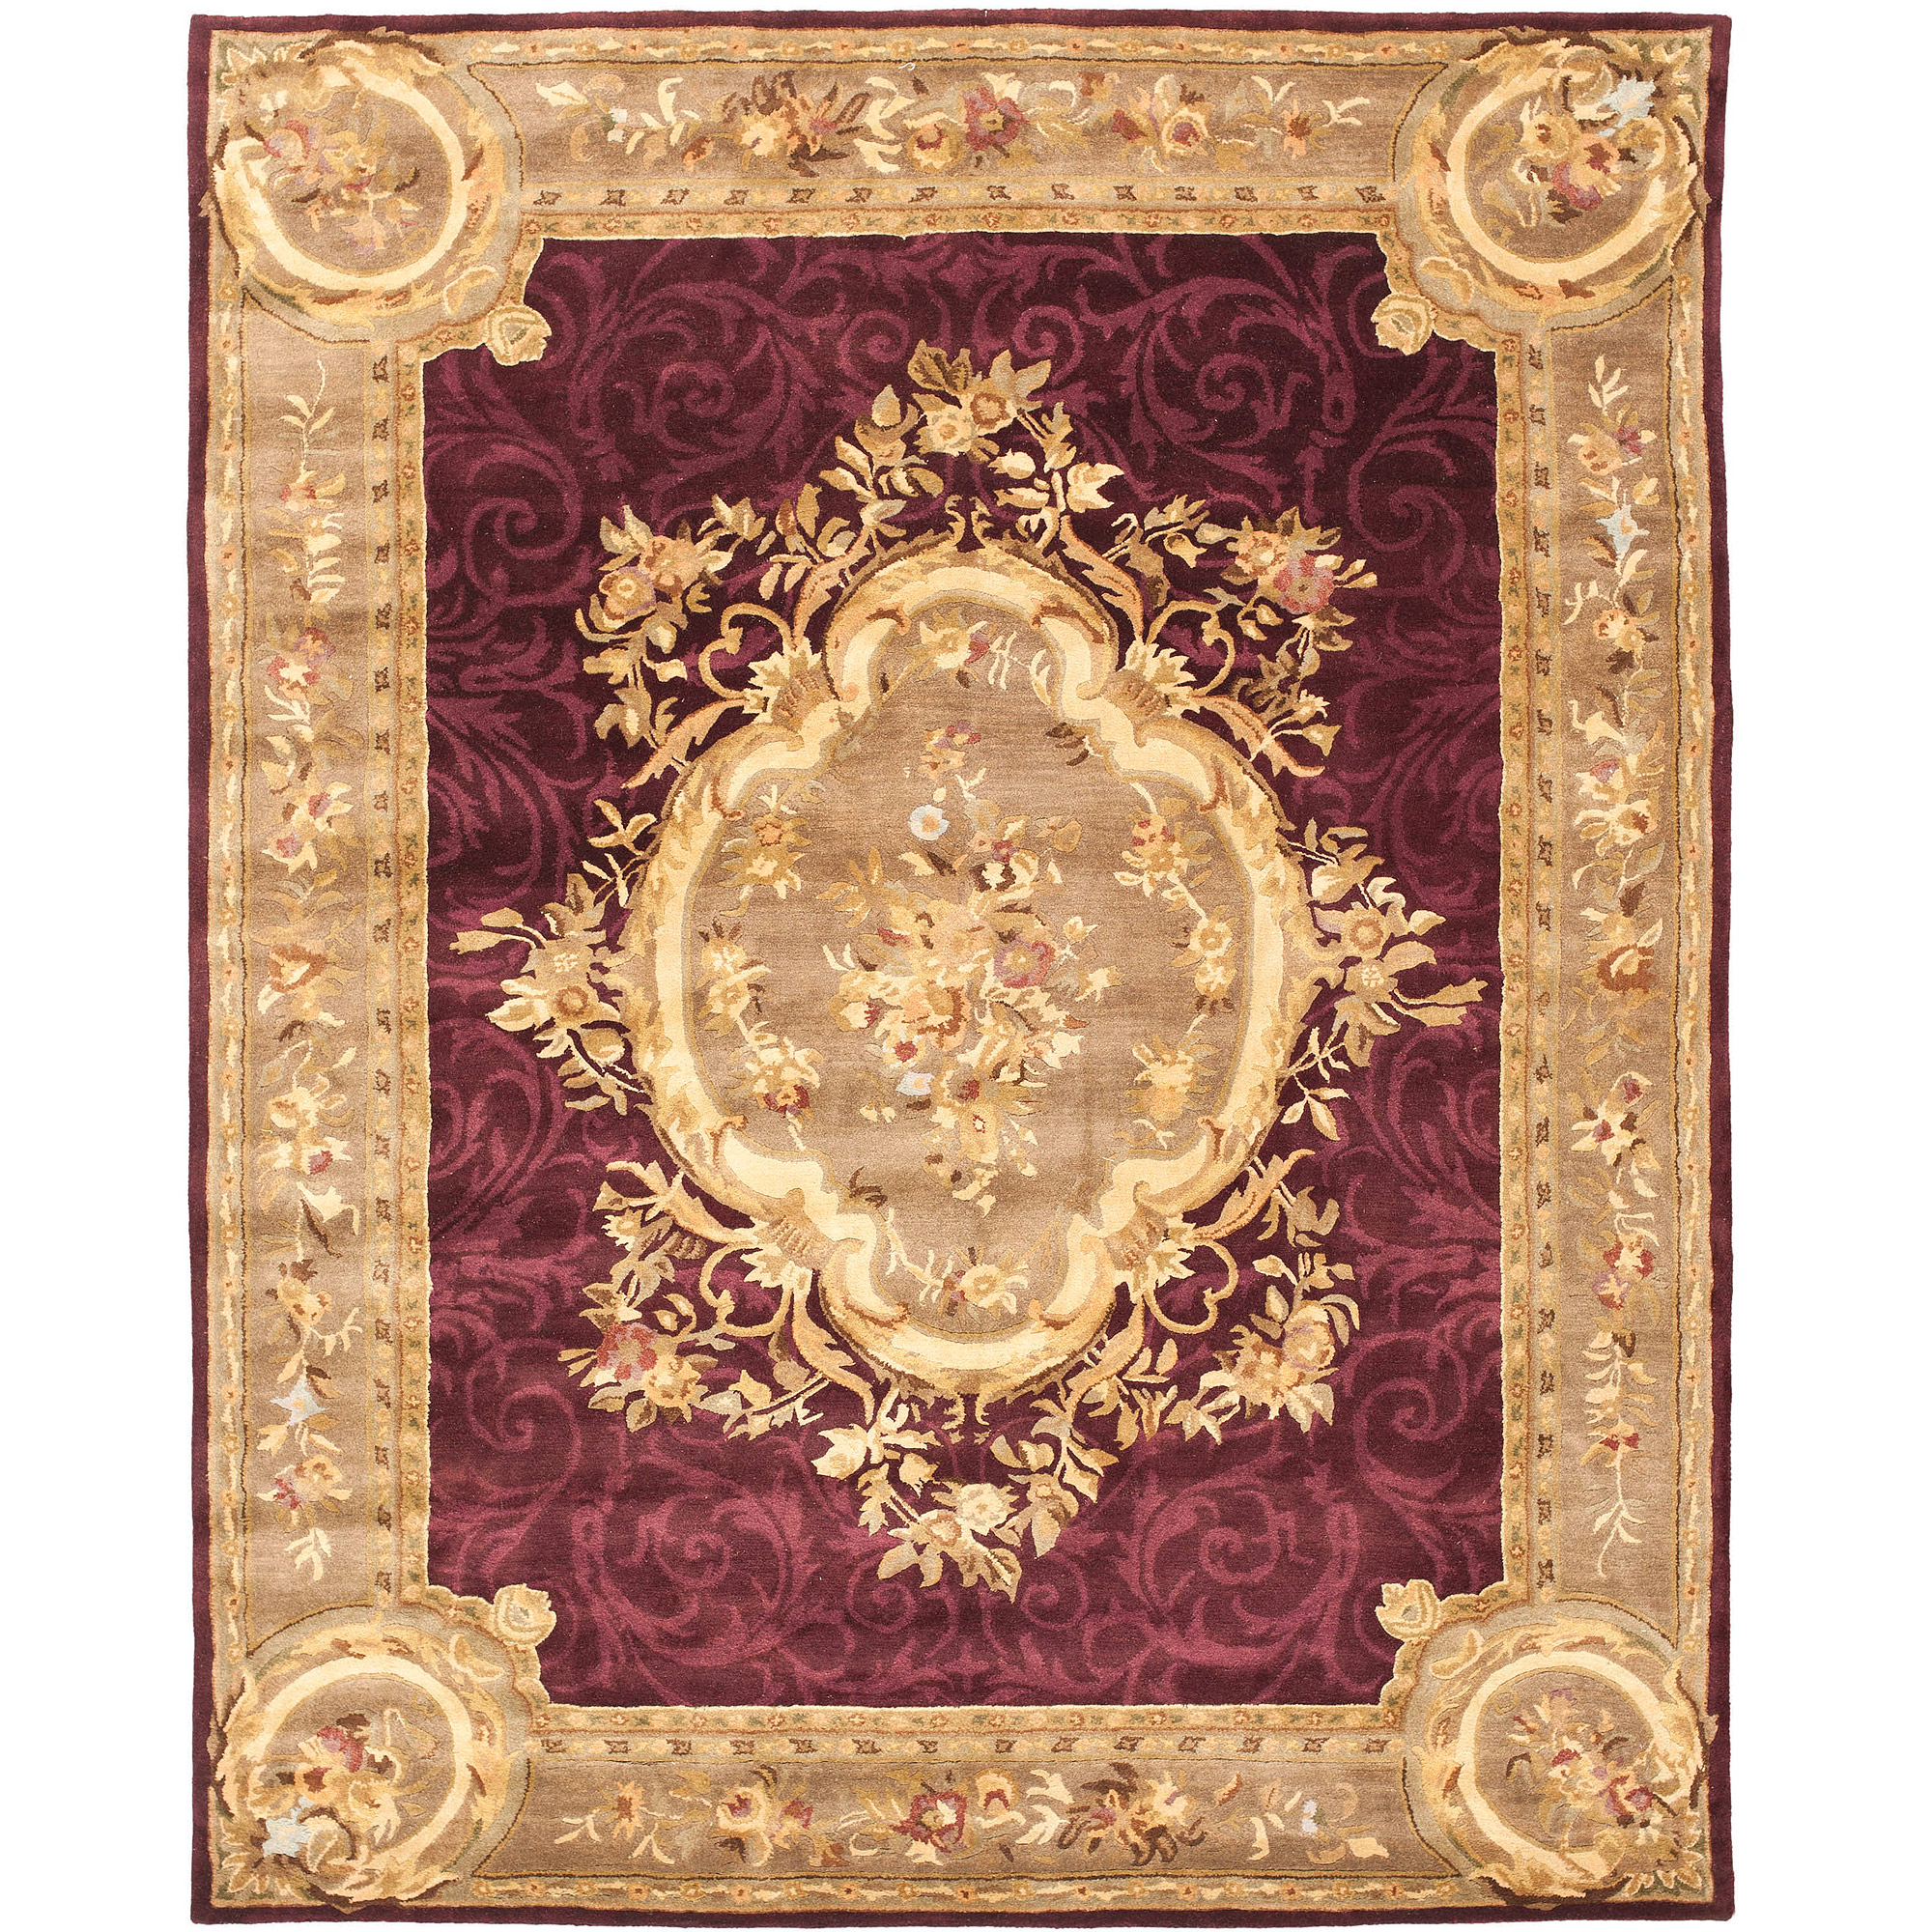 Safavieh Empire Russel Hand-Tufted Wool Area Rug, Dark Red/Dark Beige